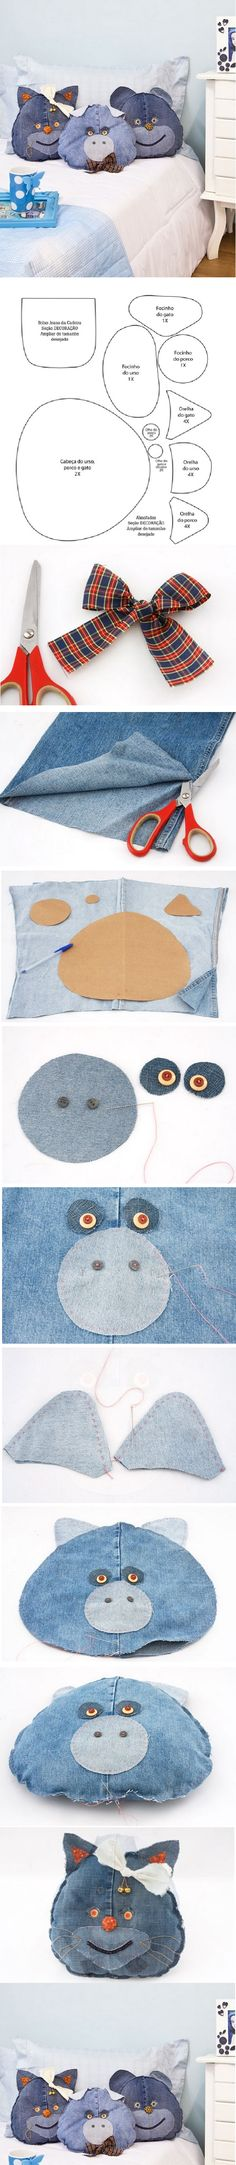 DIY Funny Jeans Pillows. I like the concept, but something about these guys creeps me out. Got to work on those facial features.